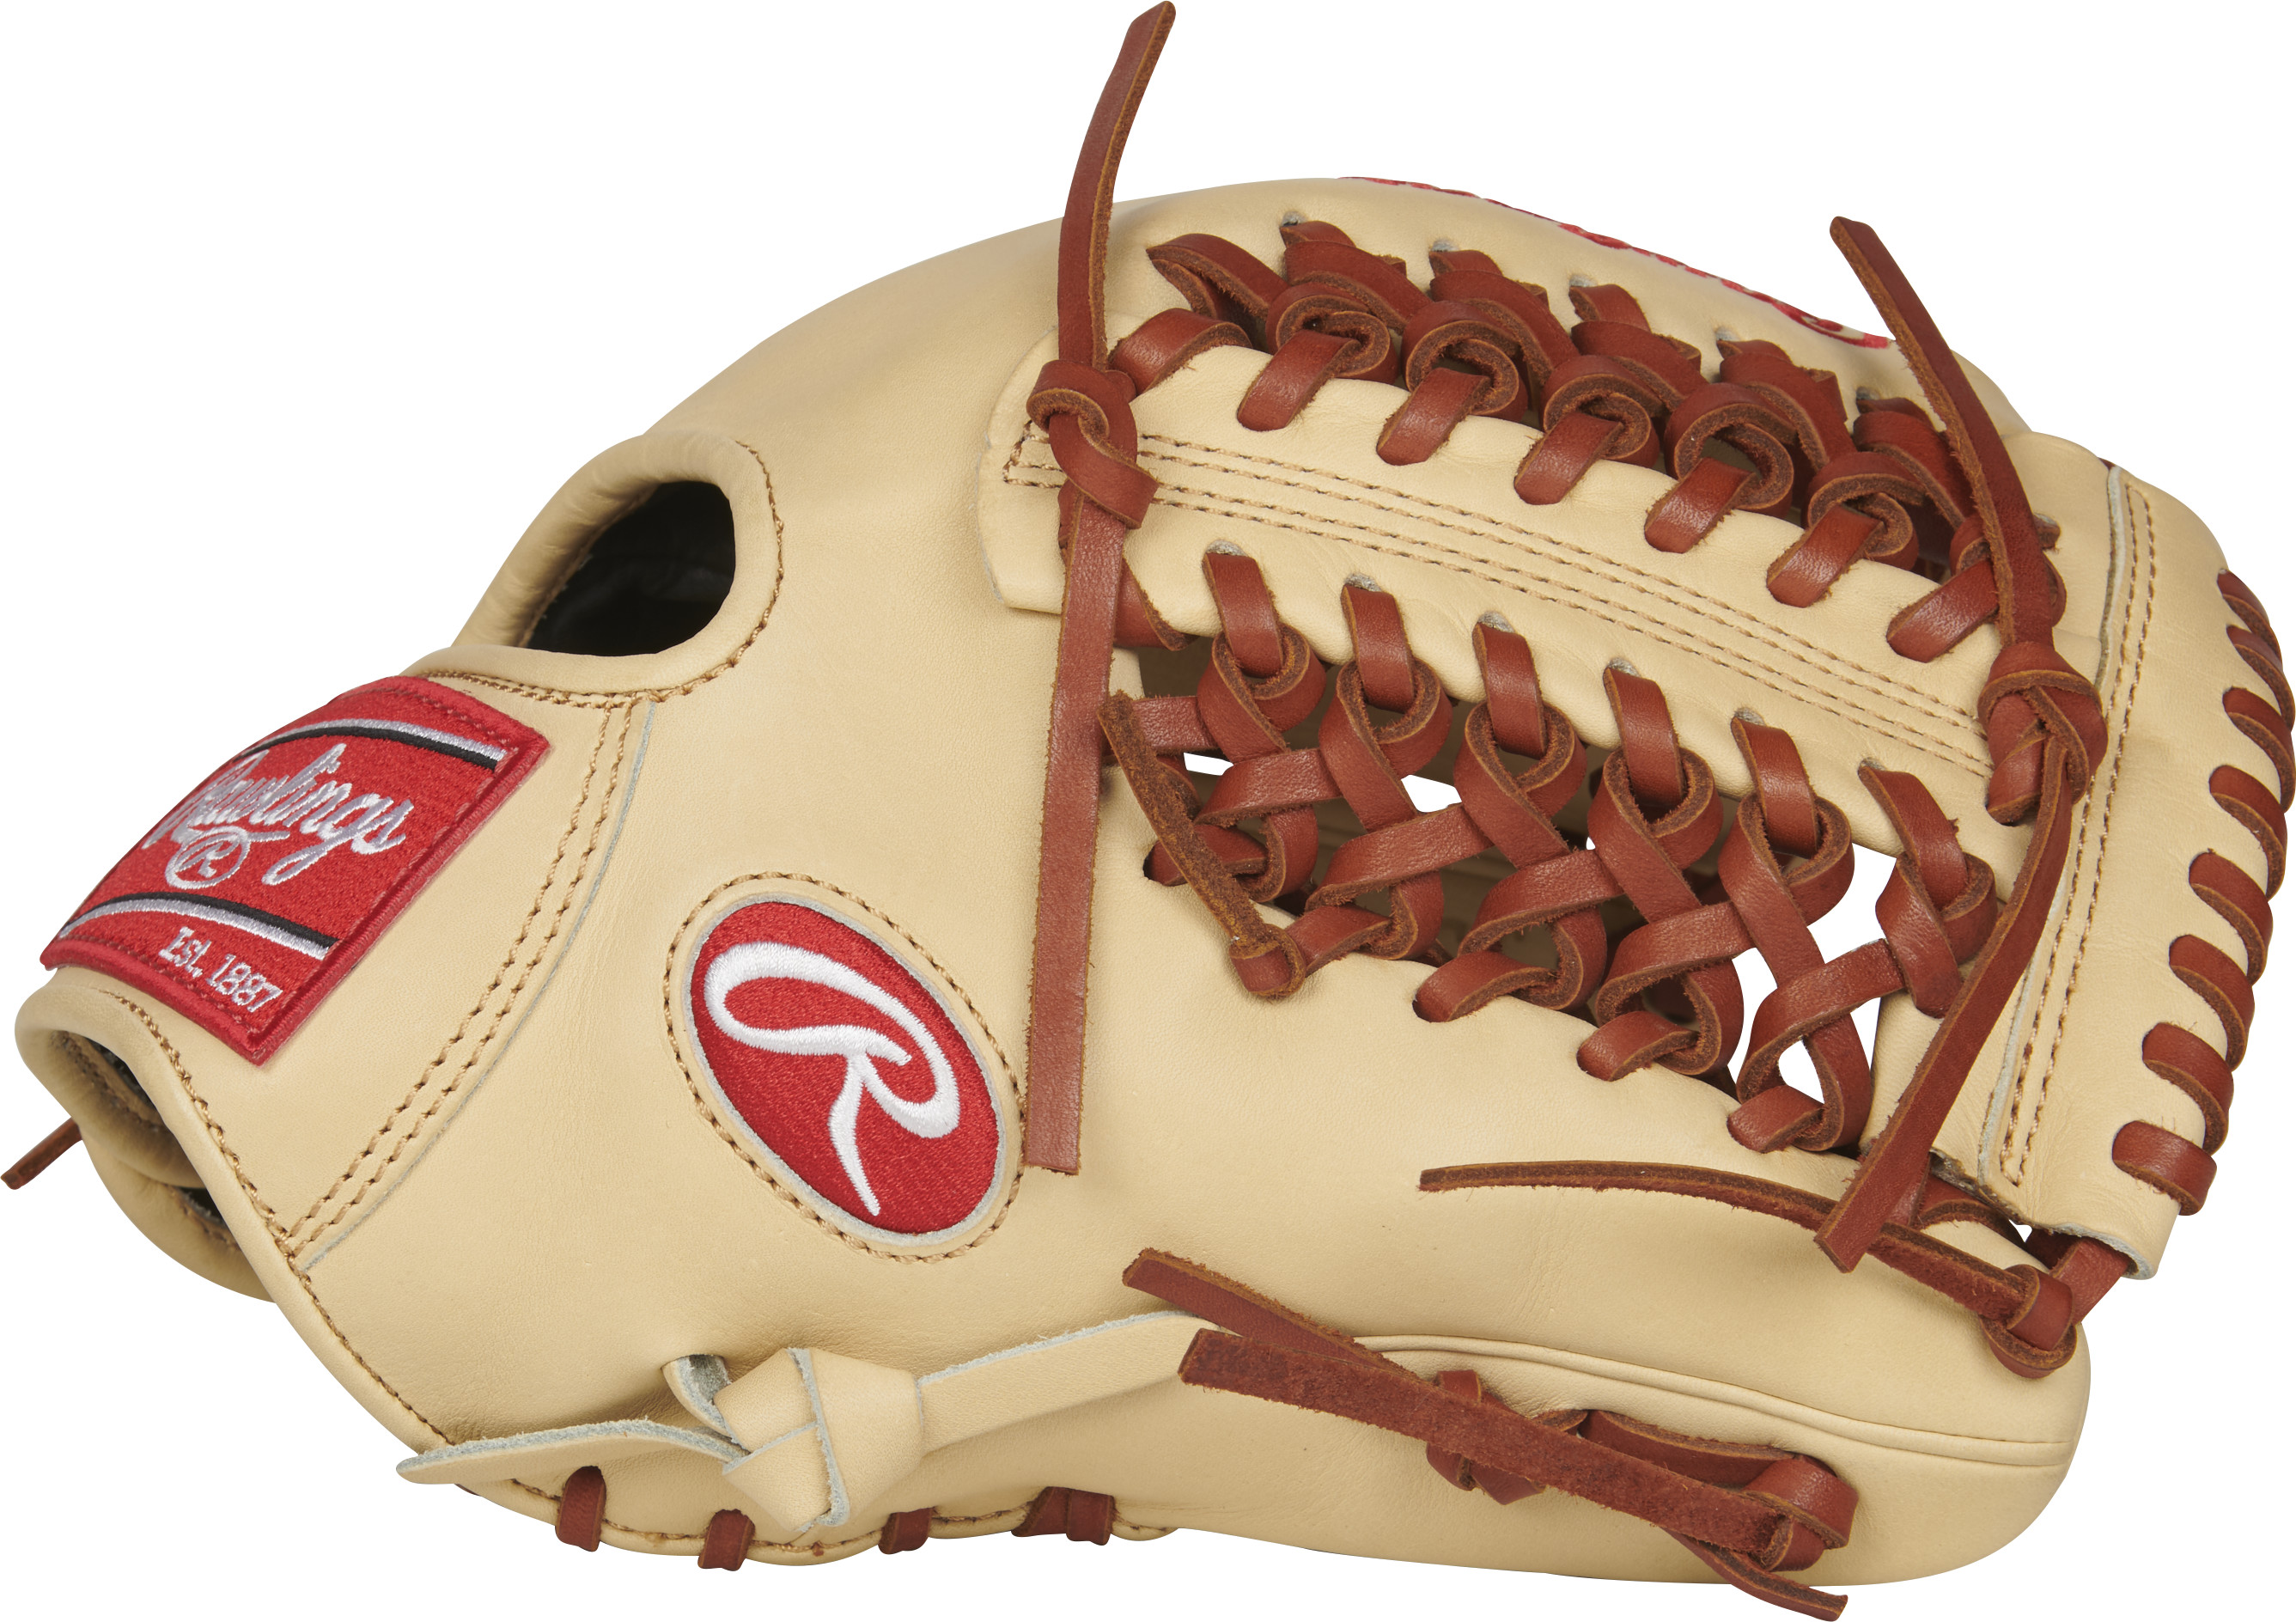 http://www.bestbatdeals.com/images/gloves/rawlings/PRO205-4CT-3.jpg